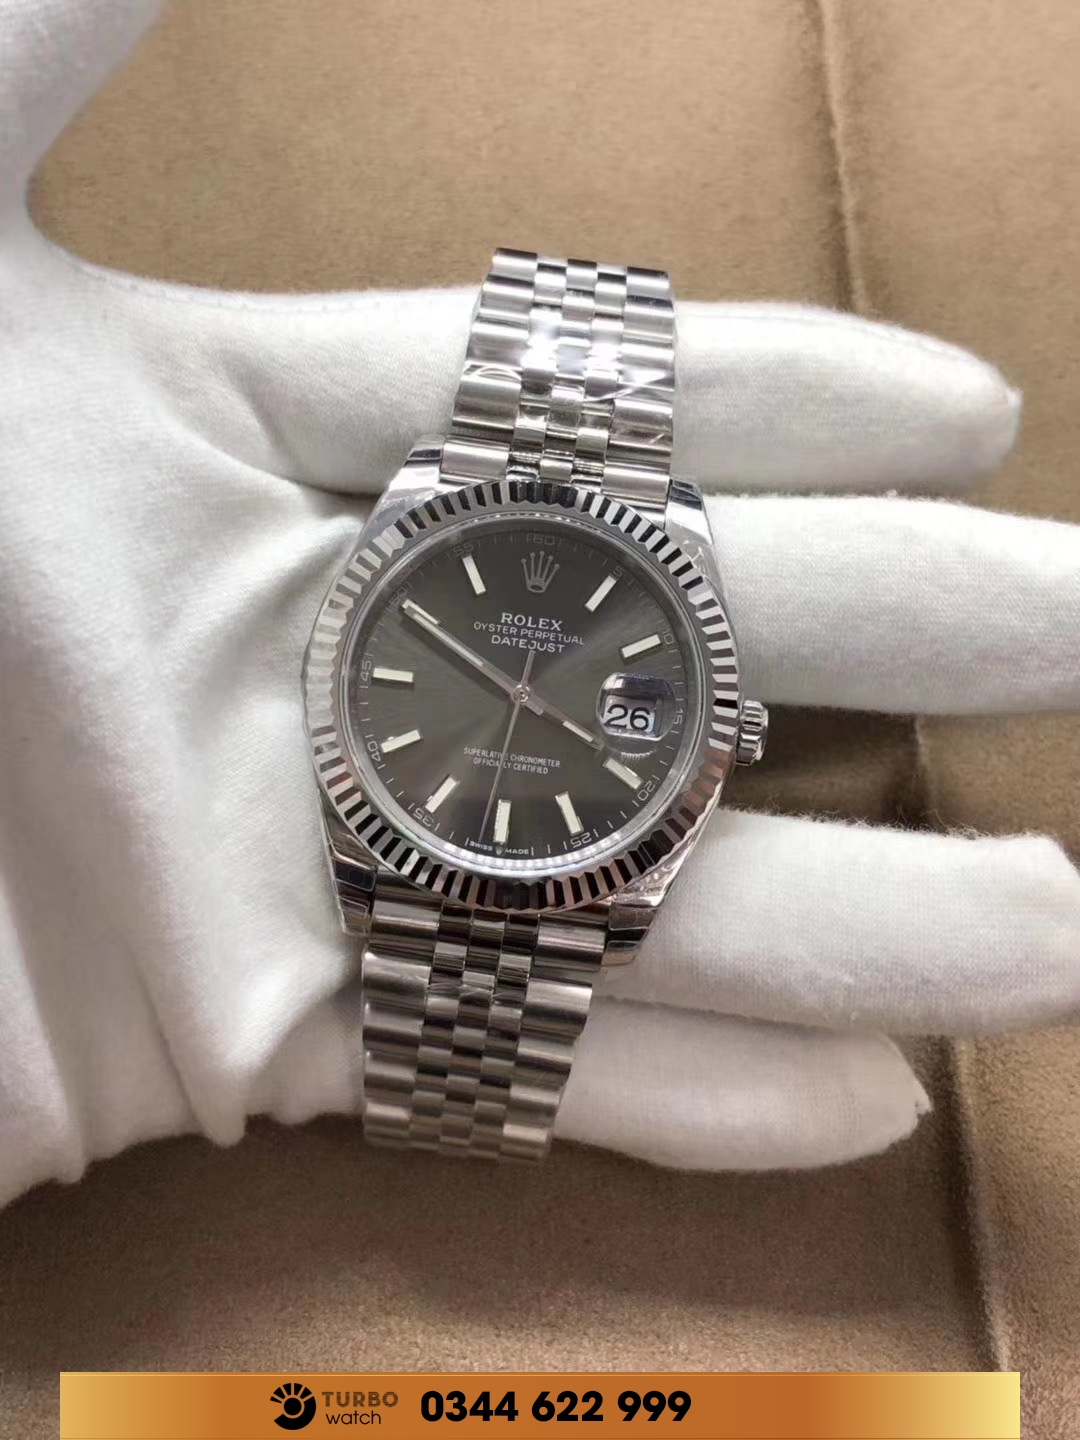 rolex Datejust 41 Dark Rhodium Dial Stainless Steel Watch on Jubilee Bracelet fake 1-1 cao cấp